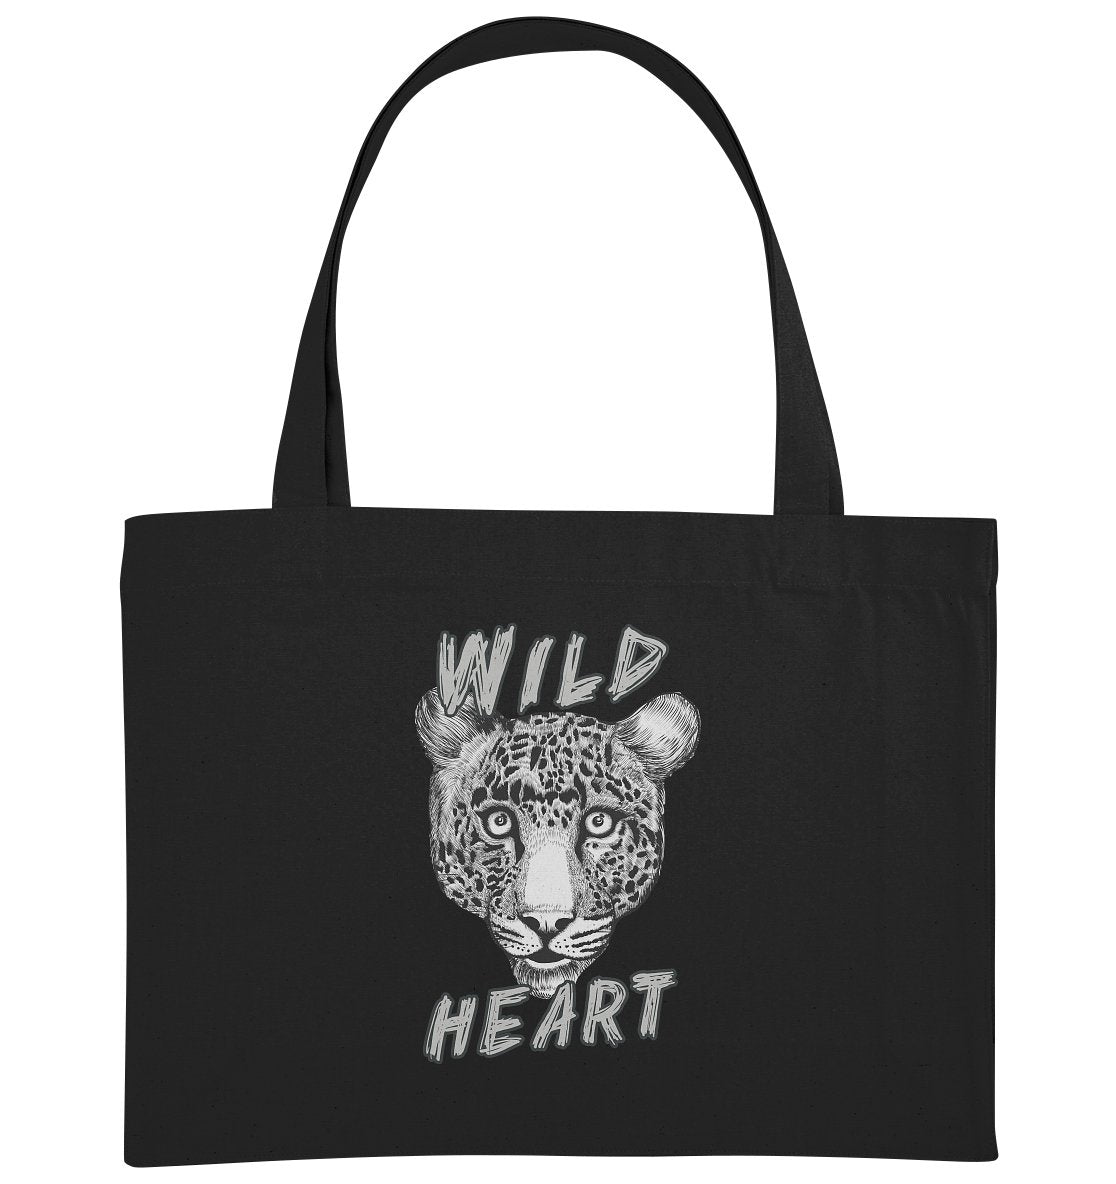 WILD HEART - Organic Shopping-Bag - FAMILY BY HEART